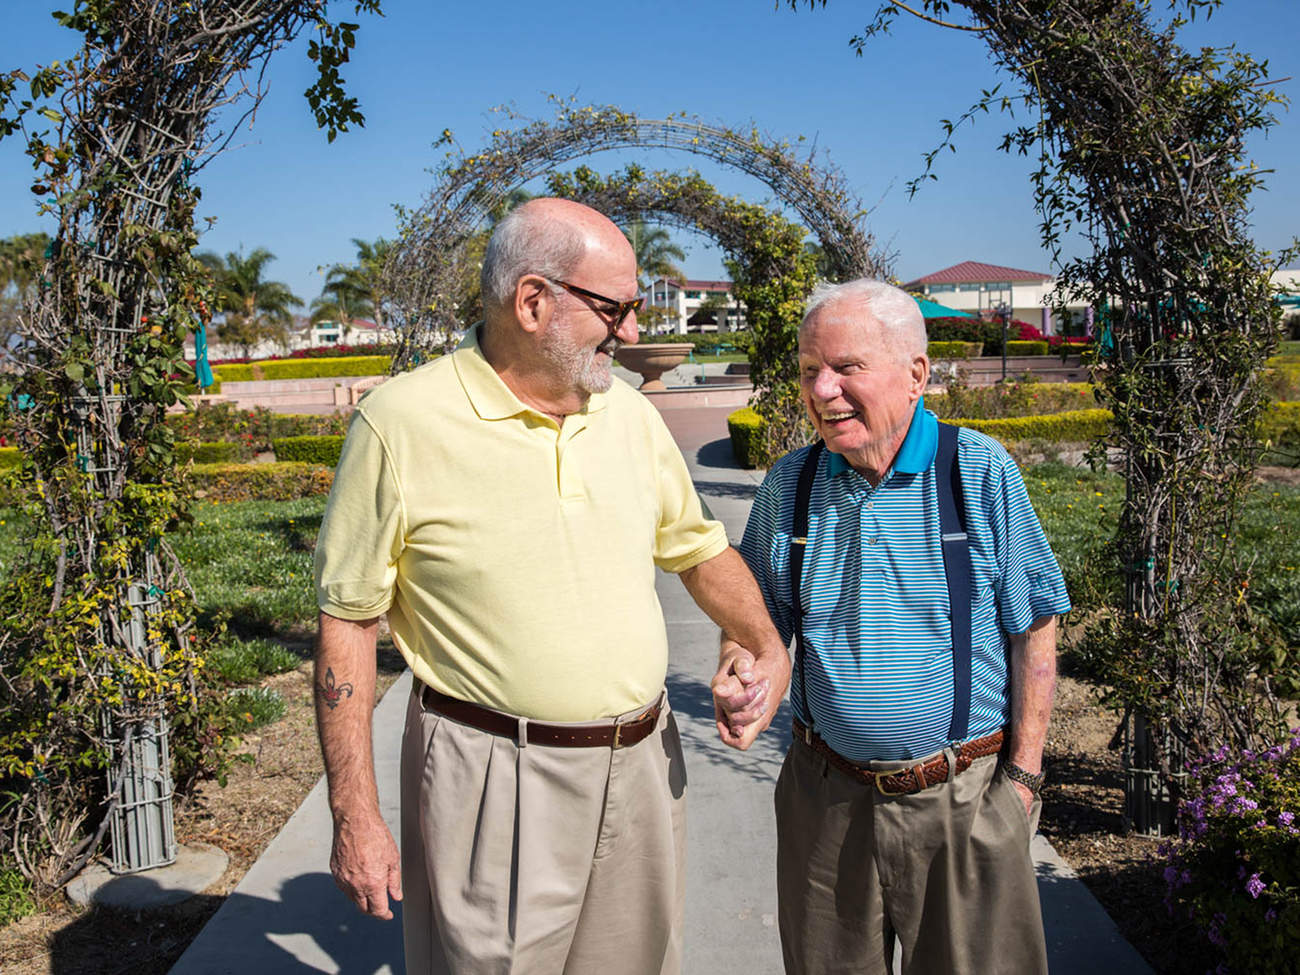 Gay Veterans — Ages 100 and 72 — Share Story of Coming Out and Falling in Love in Nursing Home